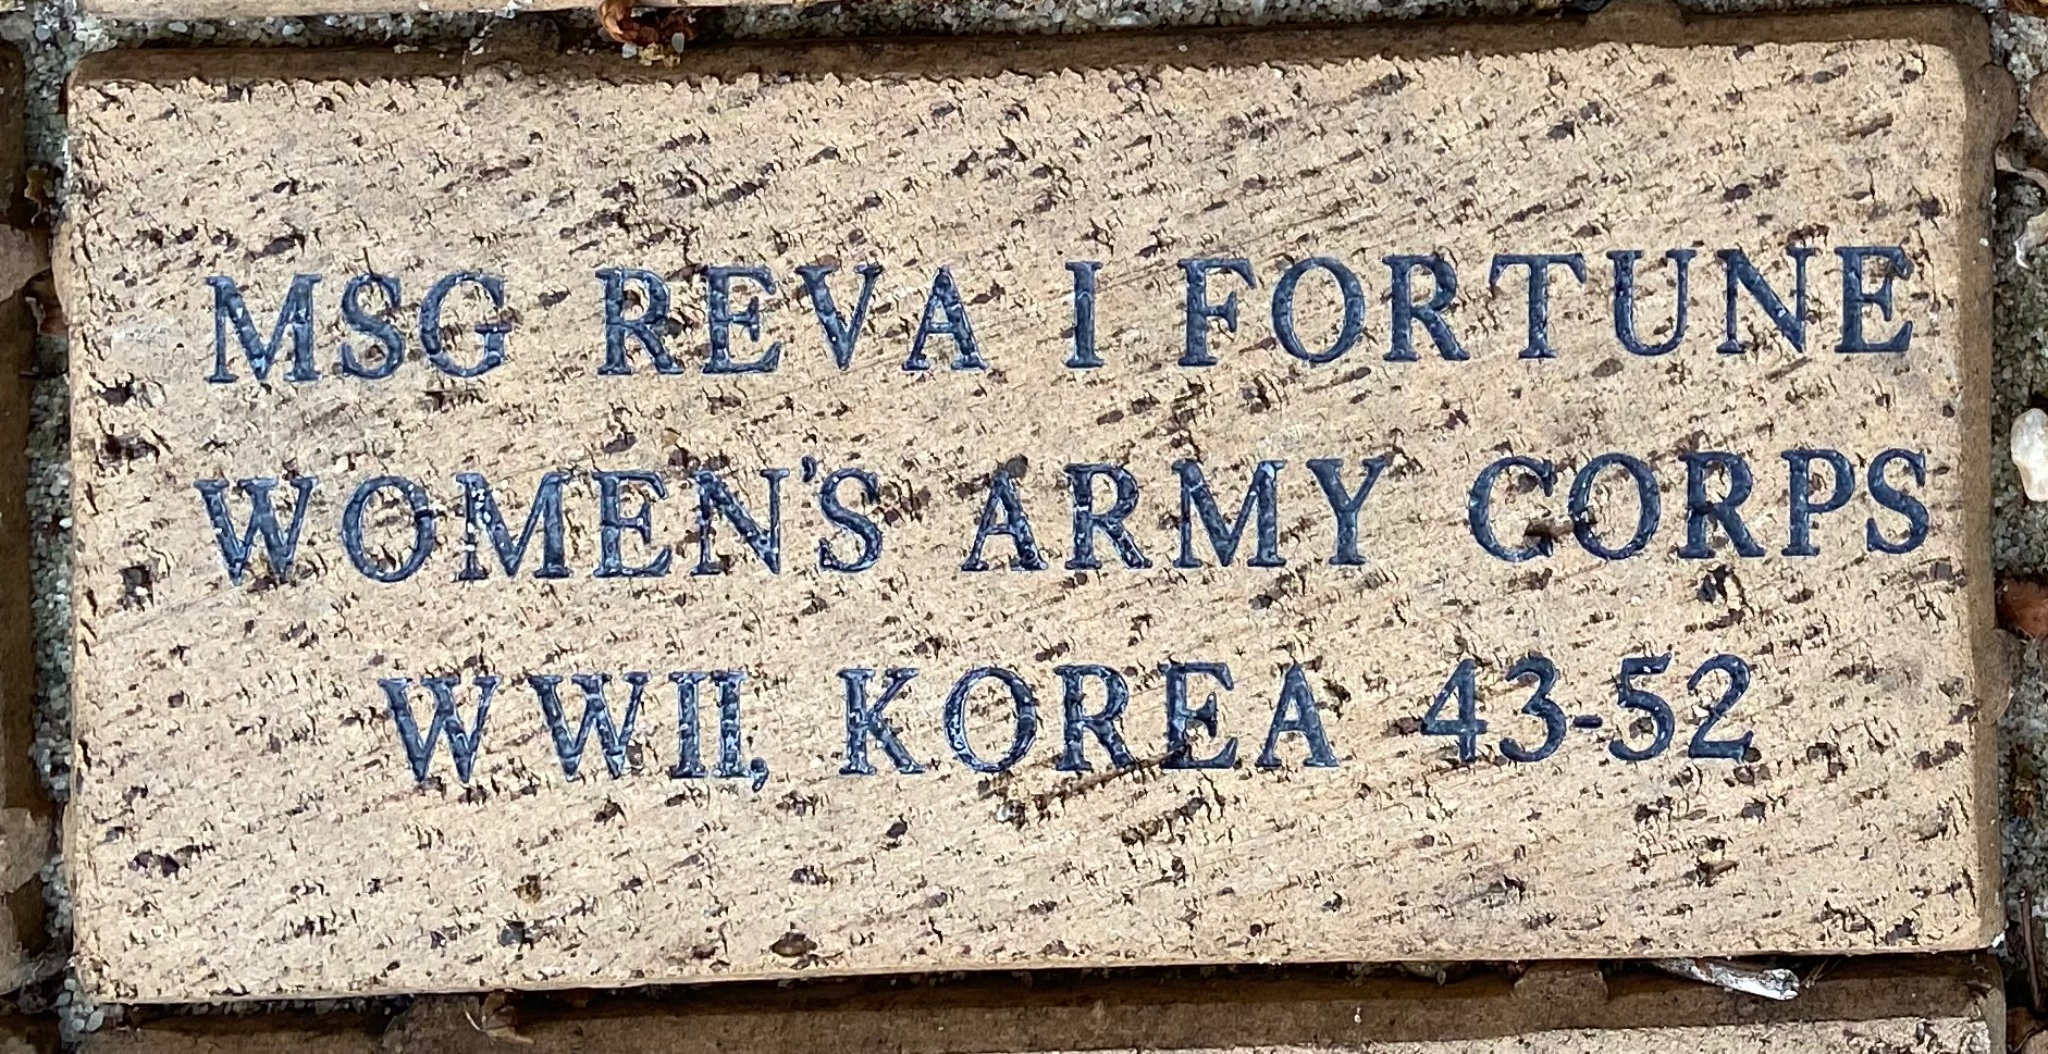 MSG REVA I FORTUNE WOMEN'S ARMY CORPS WWII KOREA 45-52